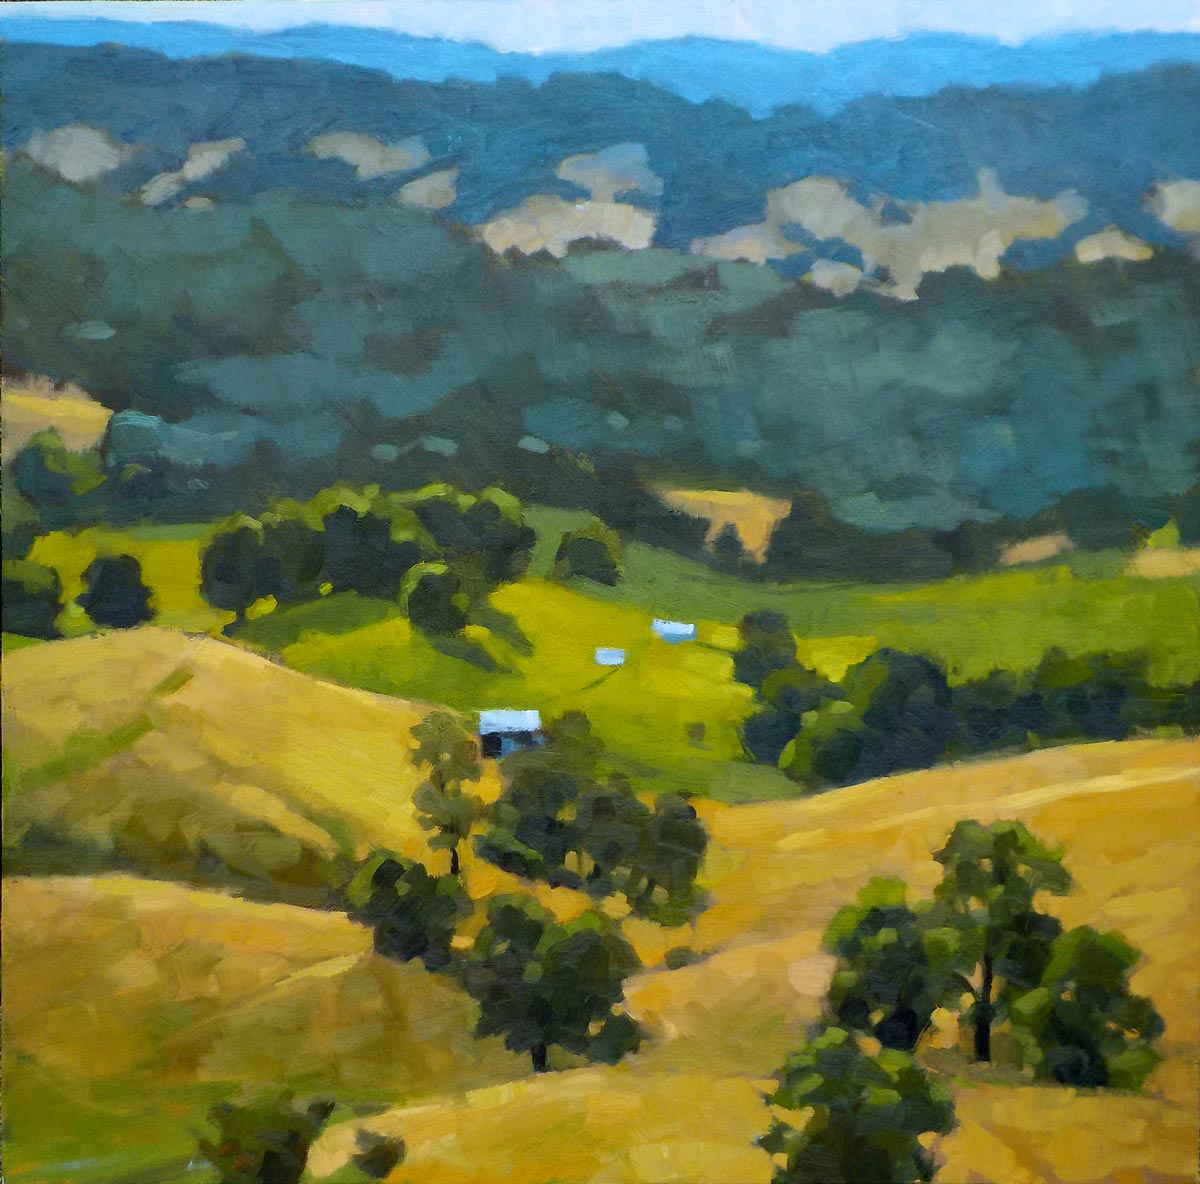 Debra Sheffer    Mount Sidney, VA    Plein Air Paintings     Member Since June 2018      Website      Since I spend weekdays in a deadline-driven office, an environment without a view of the outside world, I crave time to absorb the beauty of quiet spaces out of doors. The practice of painting requires disciplined observation. Most of my paintings begin on location and the practice has changed the way I see the world. In my mind's eye, I'm making paintings as I look around. While riding in the car I'm often transfixed by way light falls across the land and I think about how I'd lay the colors down.  My approach begins with tonal brush marks on the canvas. I distill my looking to a value study initially, balancing the darks and lights, sensibilities informed by years in graphic design. Some on-site sketches are used to inform larger studio works, but painting out of doors is always my preference.  Landscape painters who have influenced my work include California Impressionists Edgar Payne and William Wendt, also Fairfield Porter and Jean-Baptiste-Camille Corot. Increasingly I'm drawn to work with more abstracted shapes and a somewhat limited palette.  My work has been shown throughout the Shenandoah Valley region and is in private collections. Some pieces have been selected for juried shows including The American Landscape Show, Nelson Gallery and the annual Virginia Mennonite Retirement Community Show and is included in many local and regional shows. CoArt Gallery in Staunton and Reid Street Gallery in Chatham, Va. currently exhibit my work.